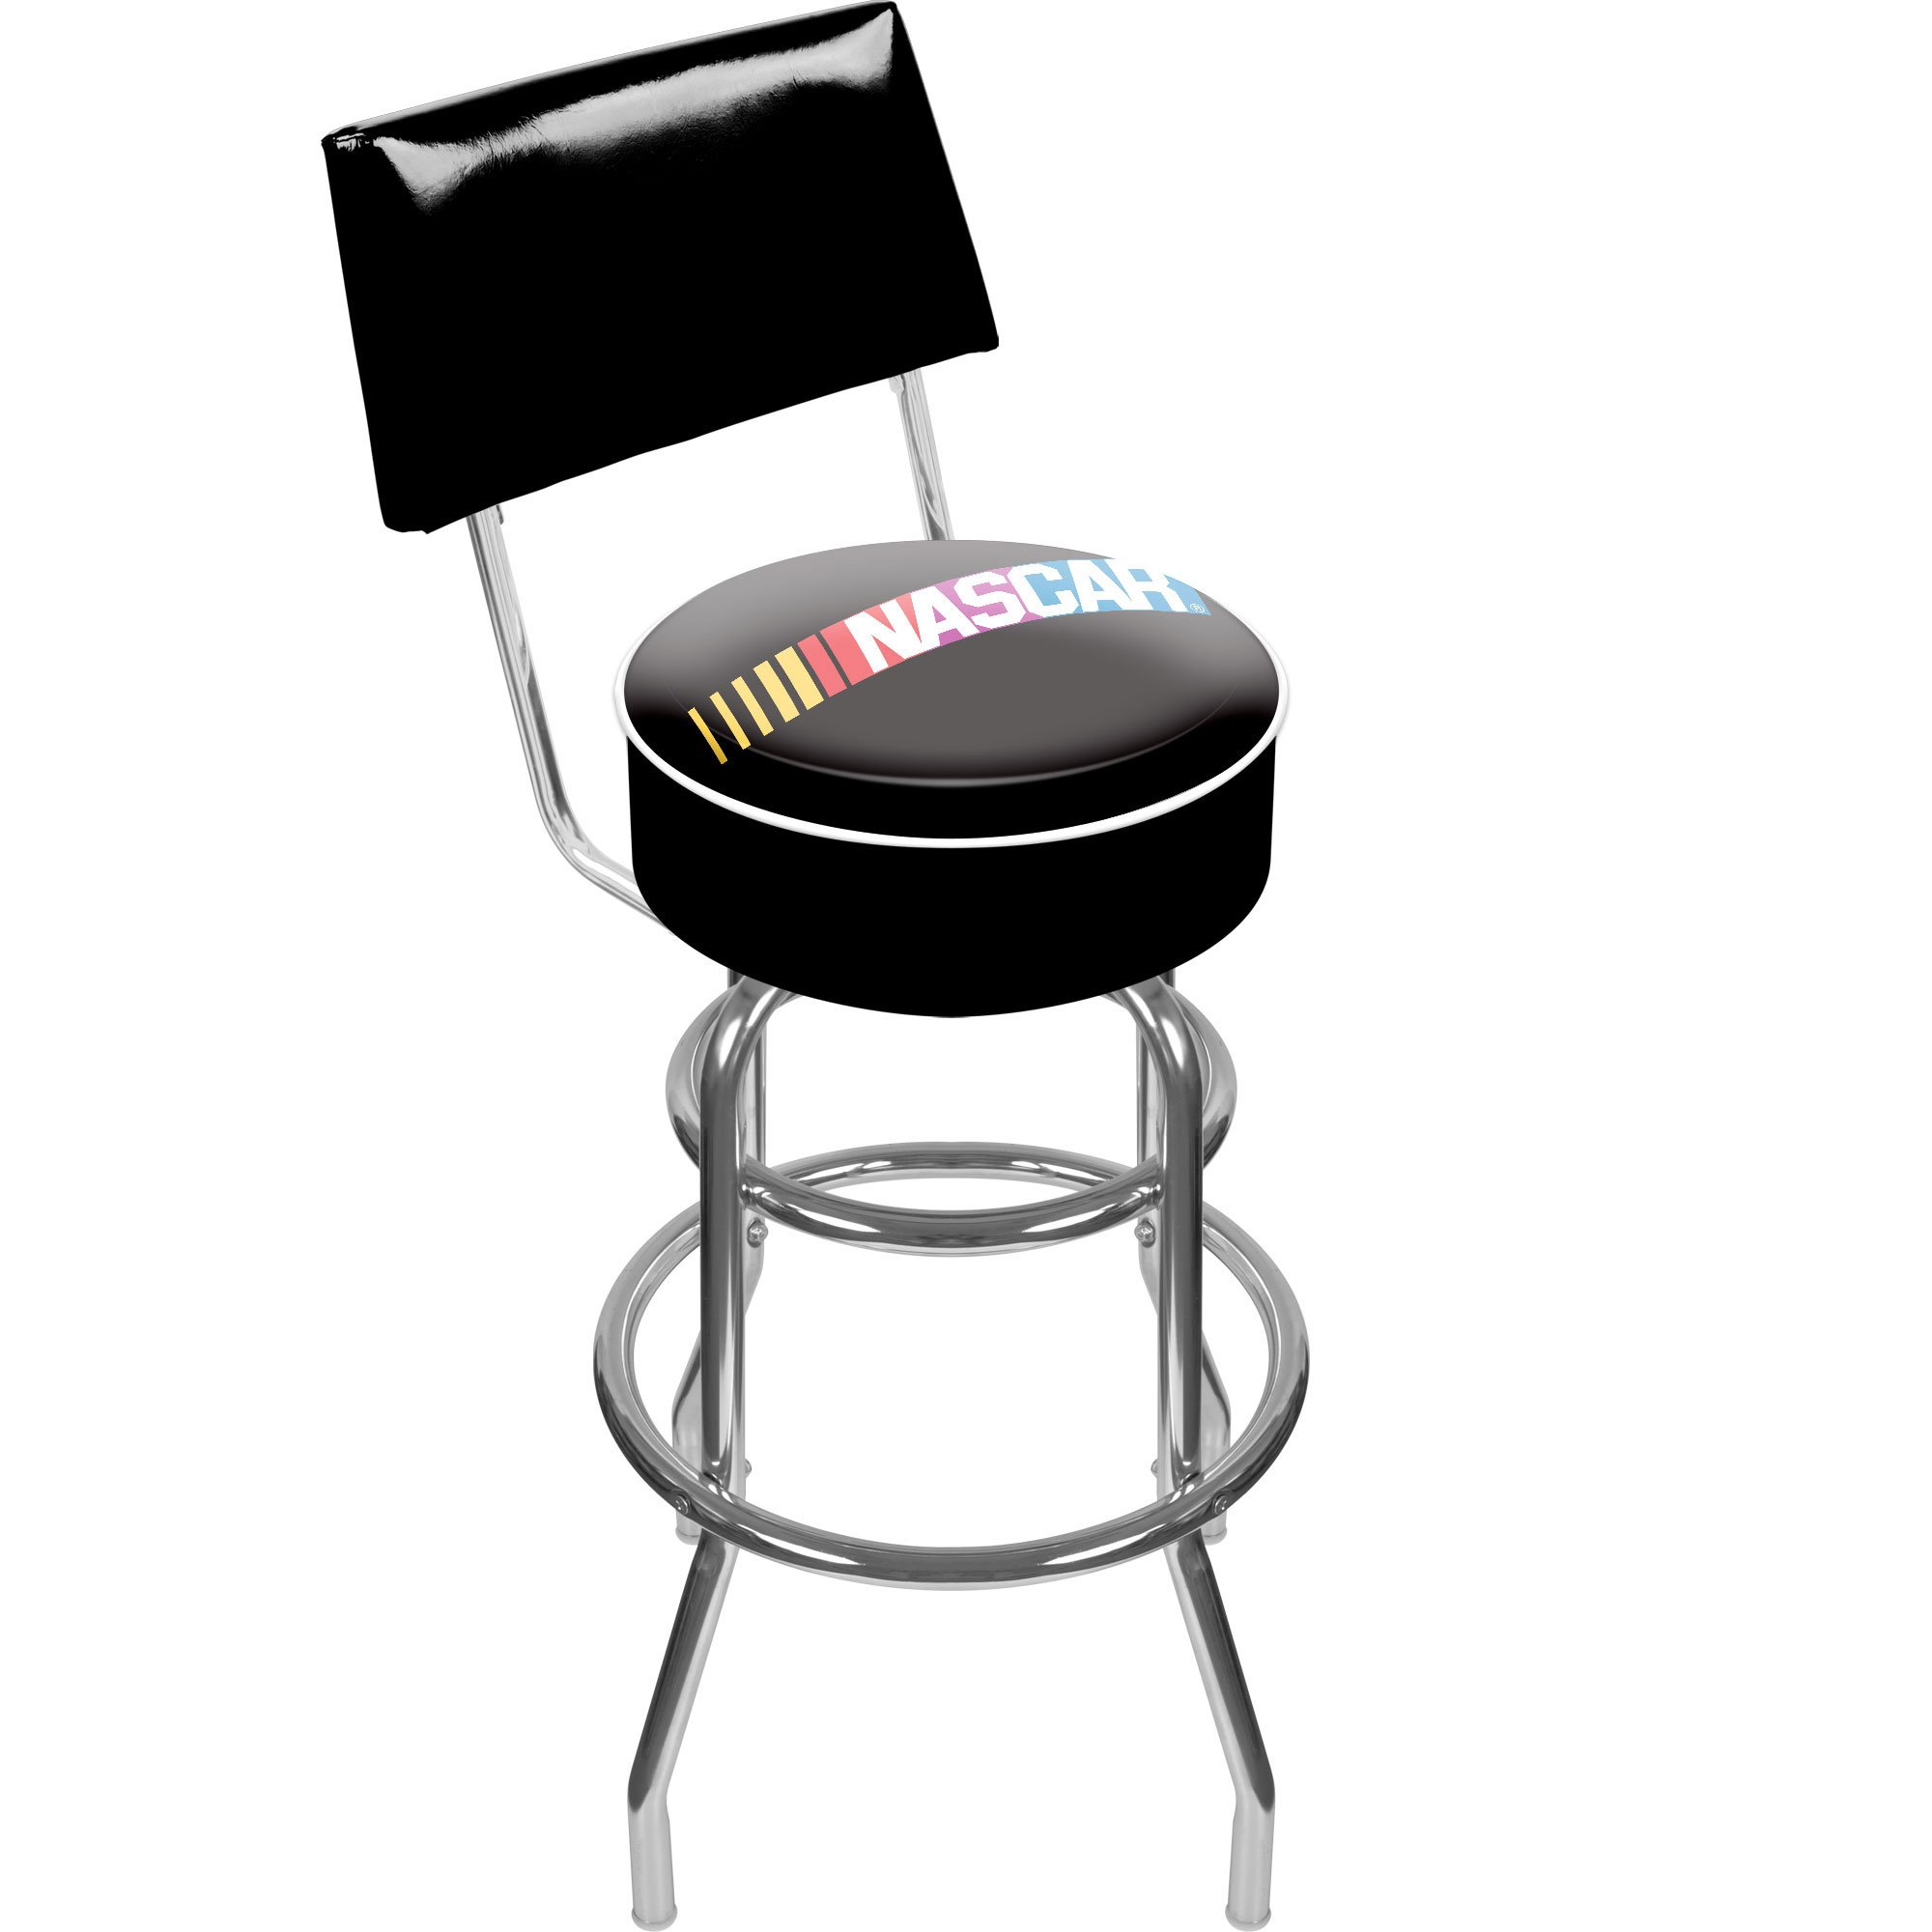 Trademark Gameroom NASCAR Padded Swivel Bar Stool with Back by Trademark Gameroom (Image #1)